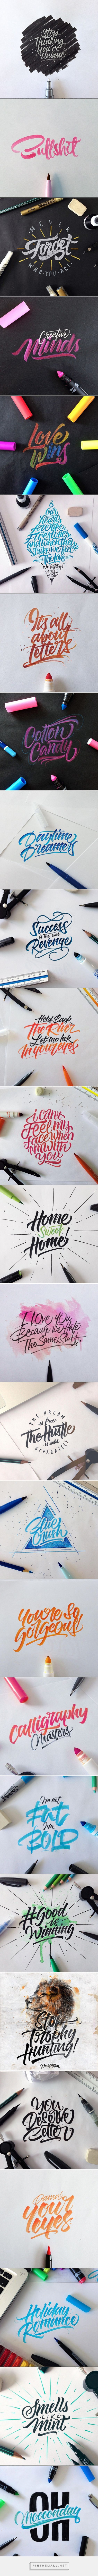 Some inspiration for you!   #busybeestationery #stationery #stationerylovers #stationerylover #stationeryaddict #pen #pens #ink #paper #pencil #penmanship #typography #calligraphy #writing